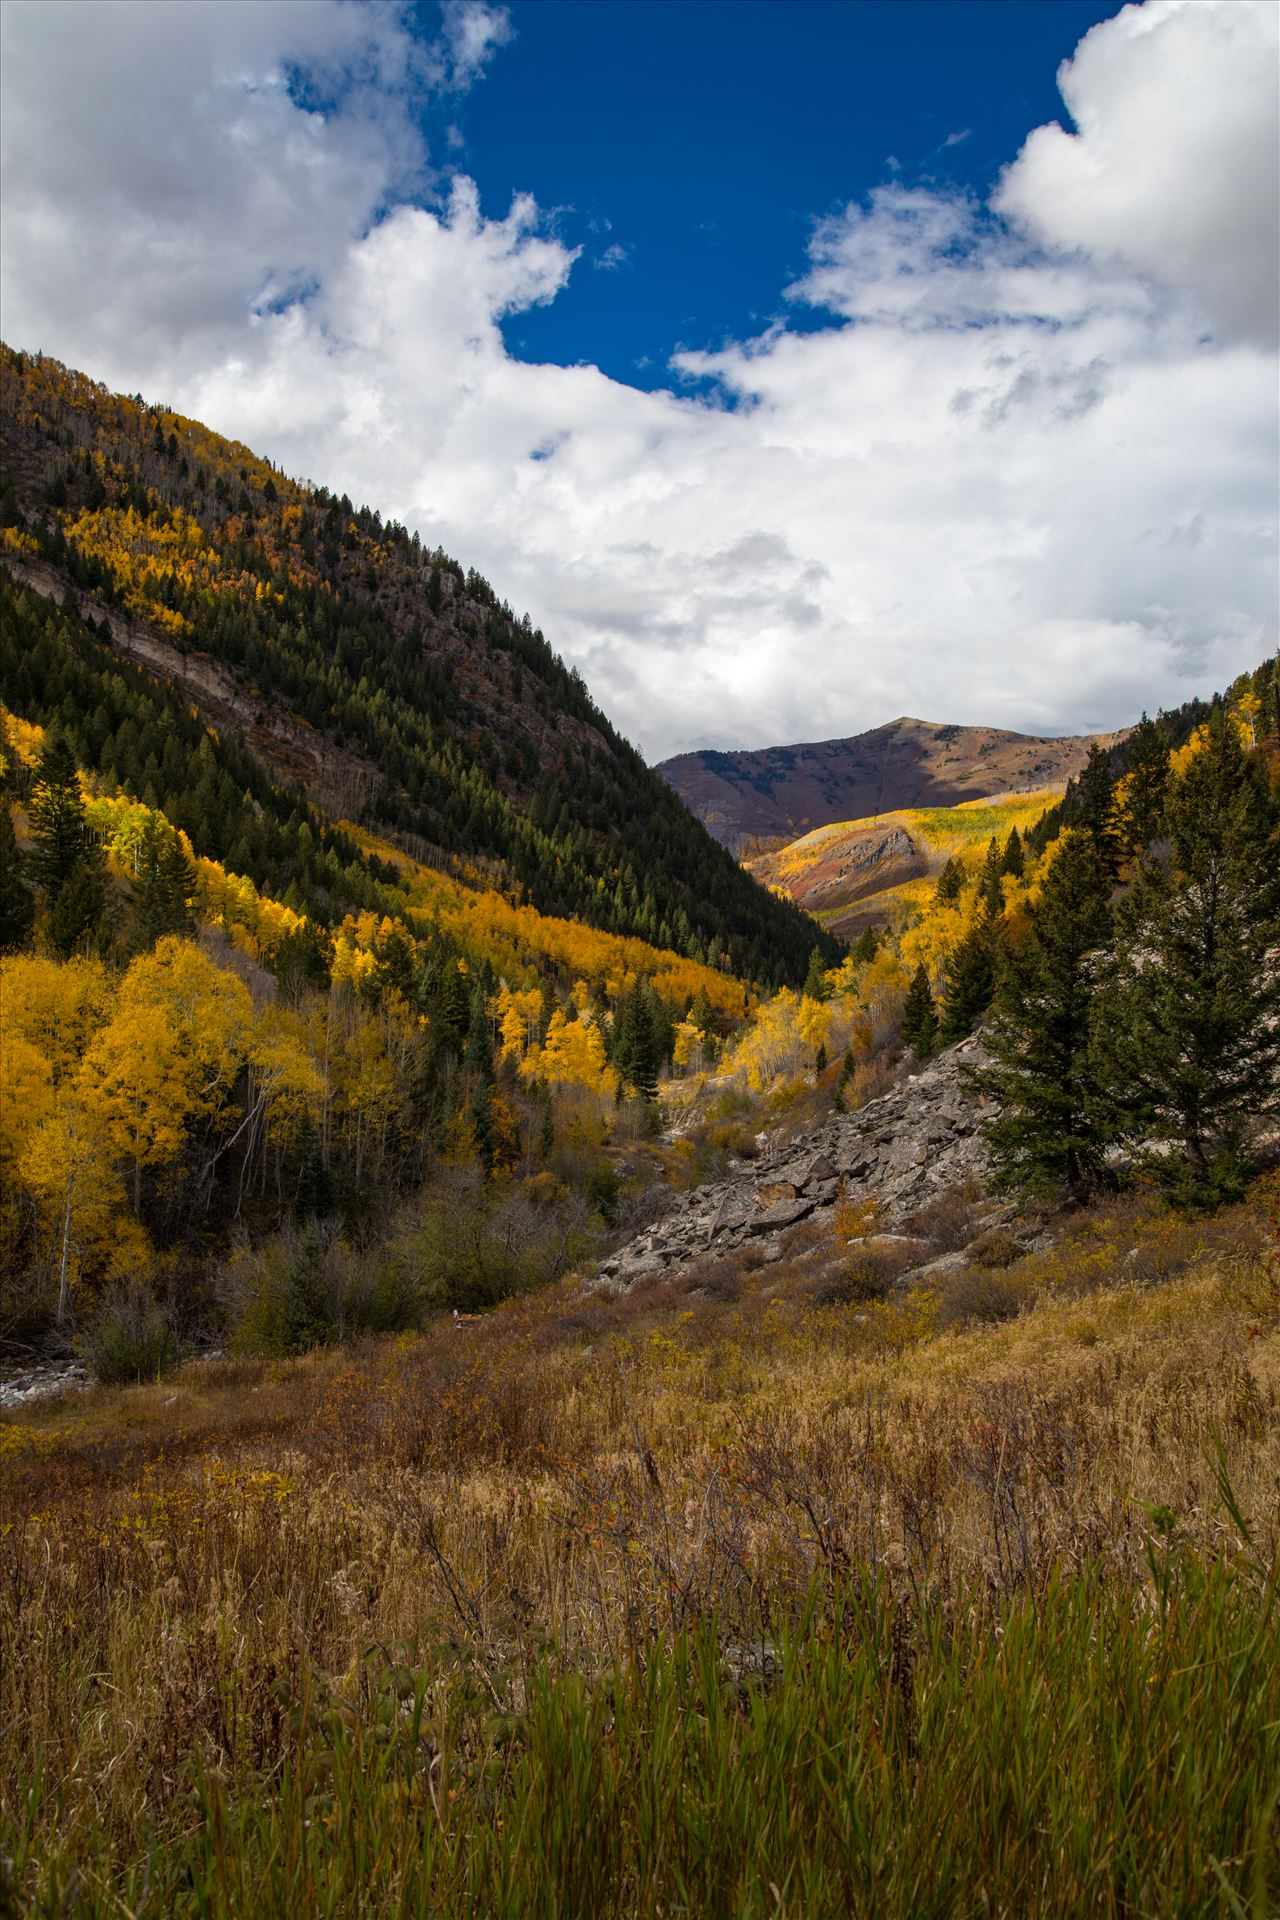 Snowmass Wilderness Area No 3 - Fall grasses and valley in the Snowmass Wilderness Area. by D Scott Smith